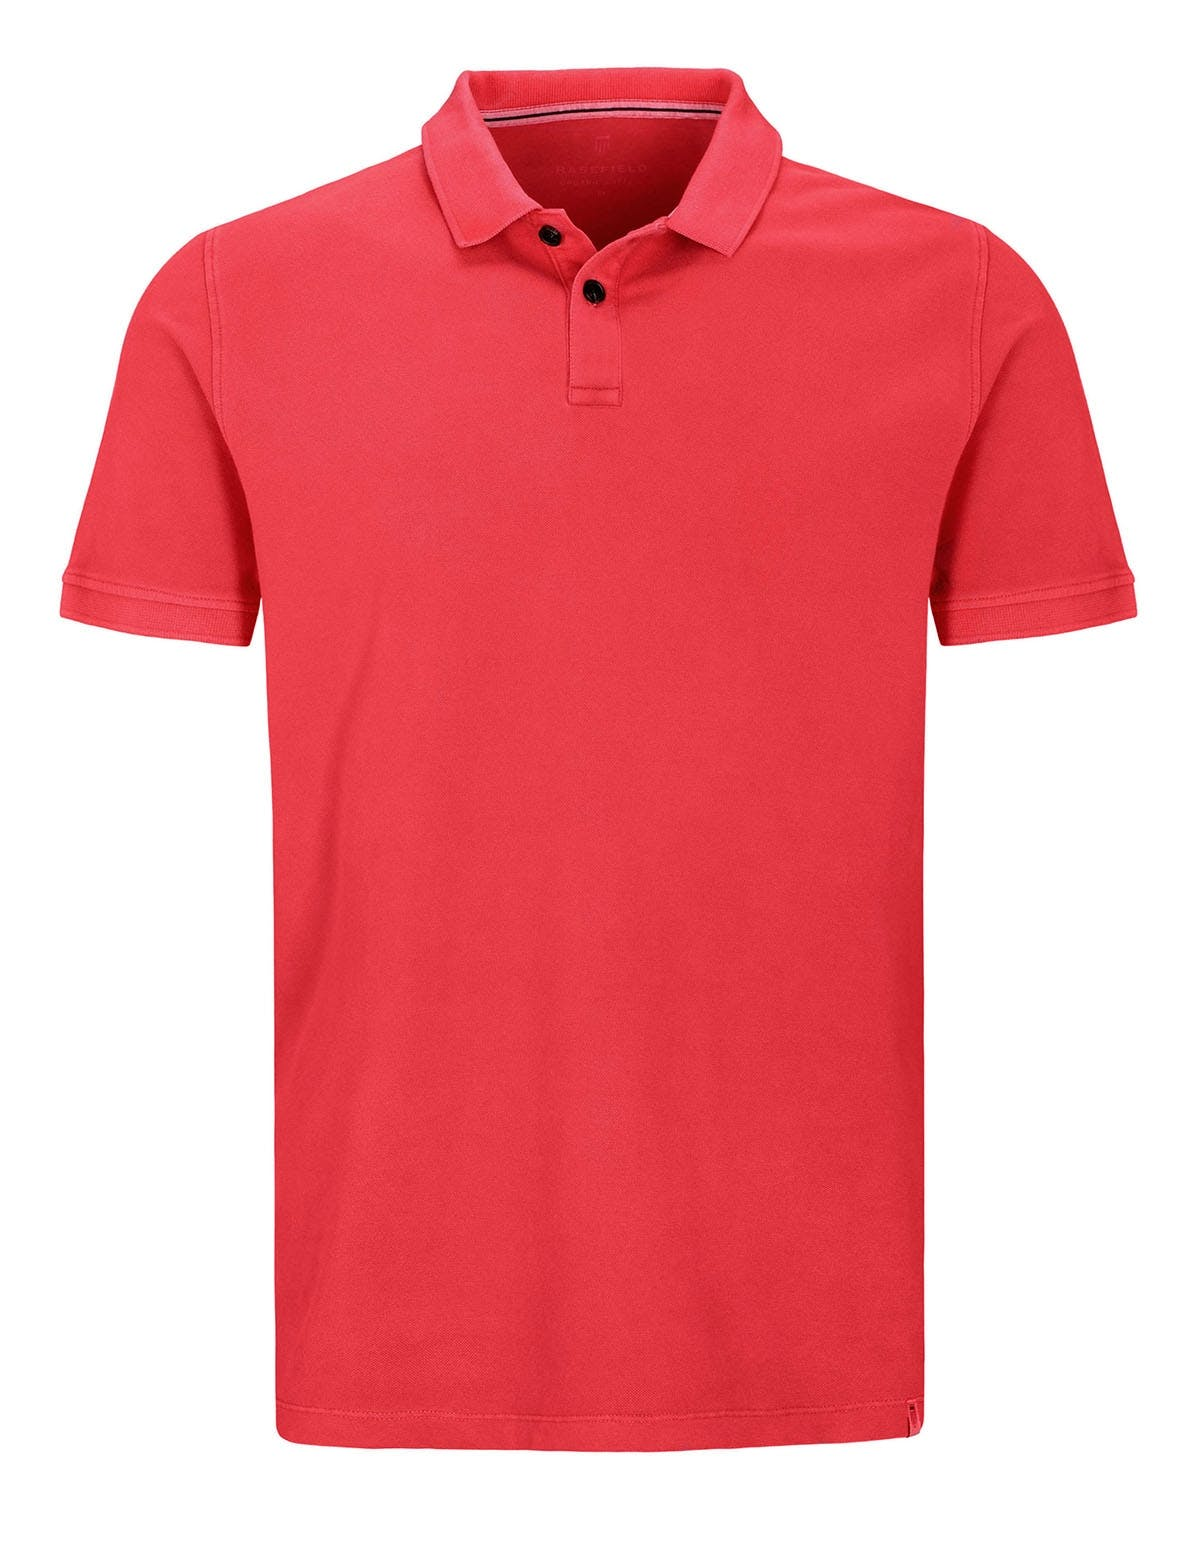 ORGANIC COTTON Poloshirt - Red